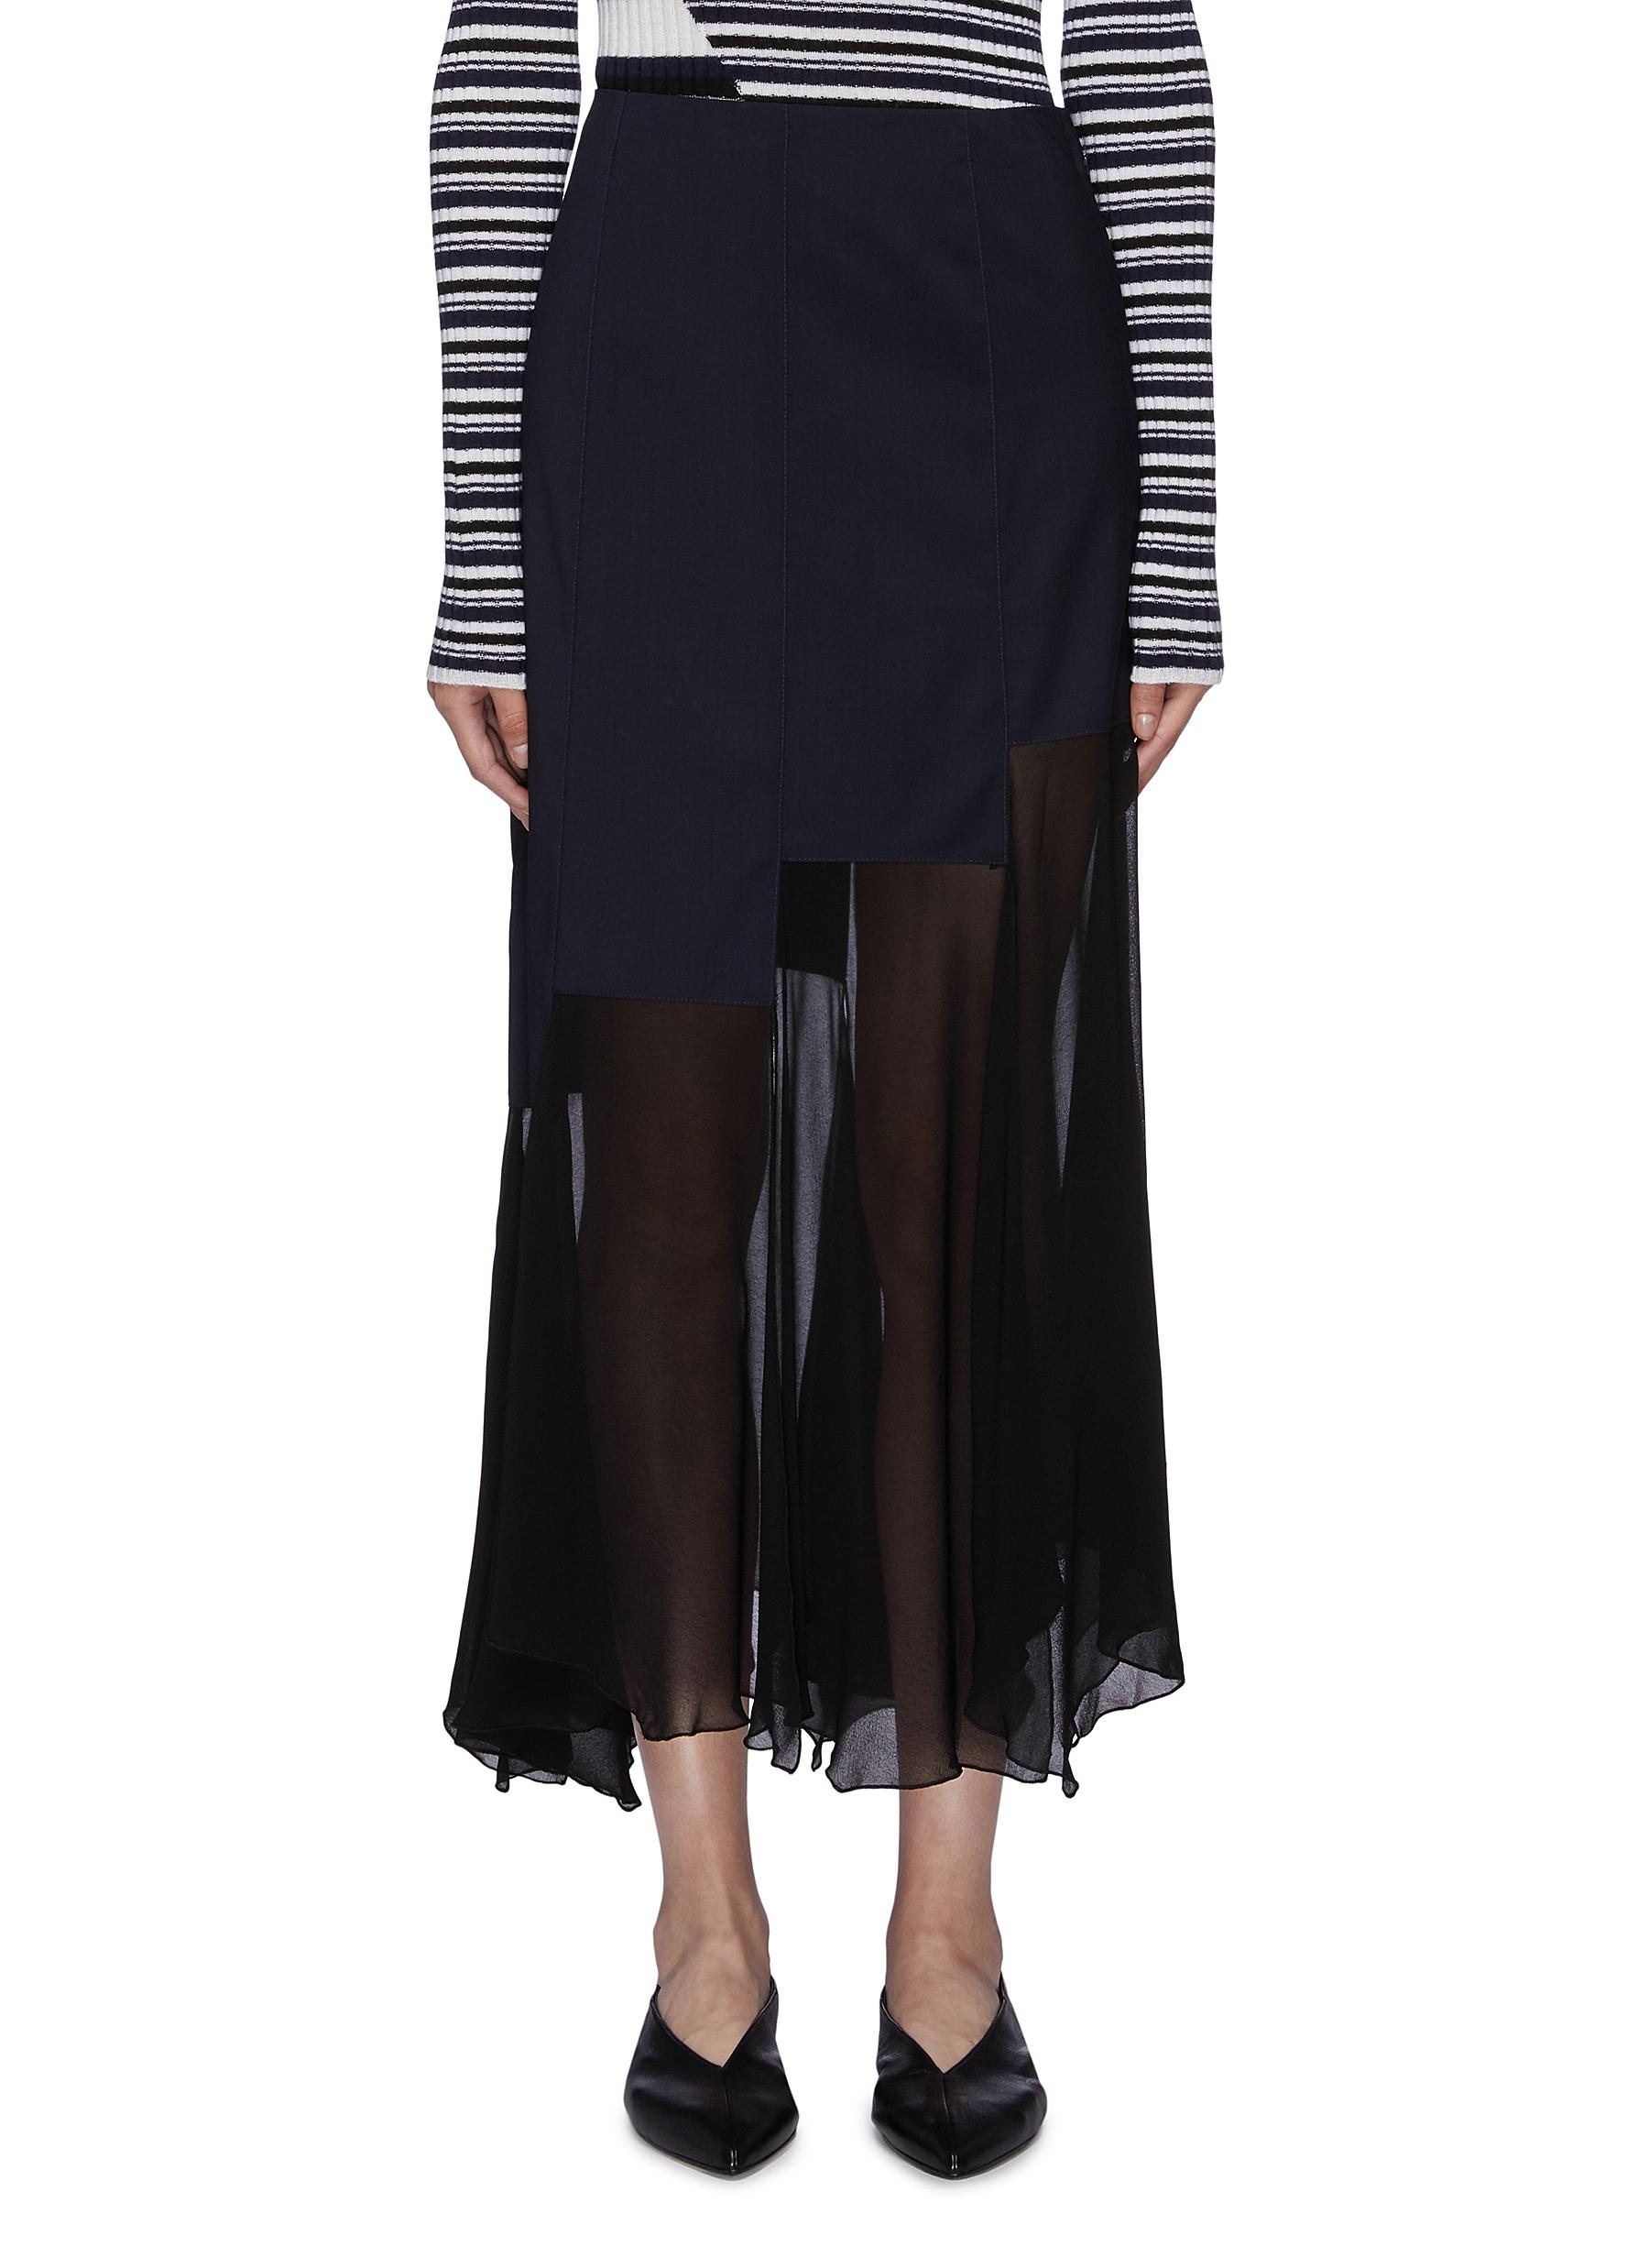 Staggered overlay ruffle hem georgette midi skirt by Sonia Rykiel